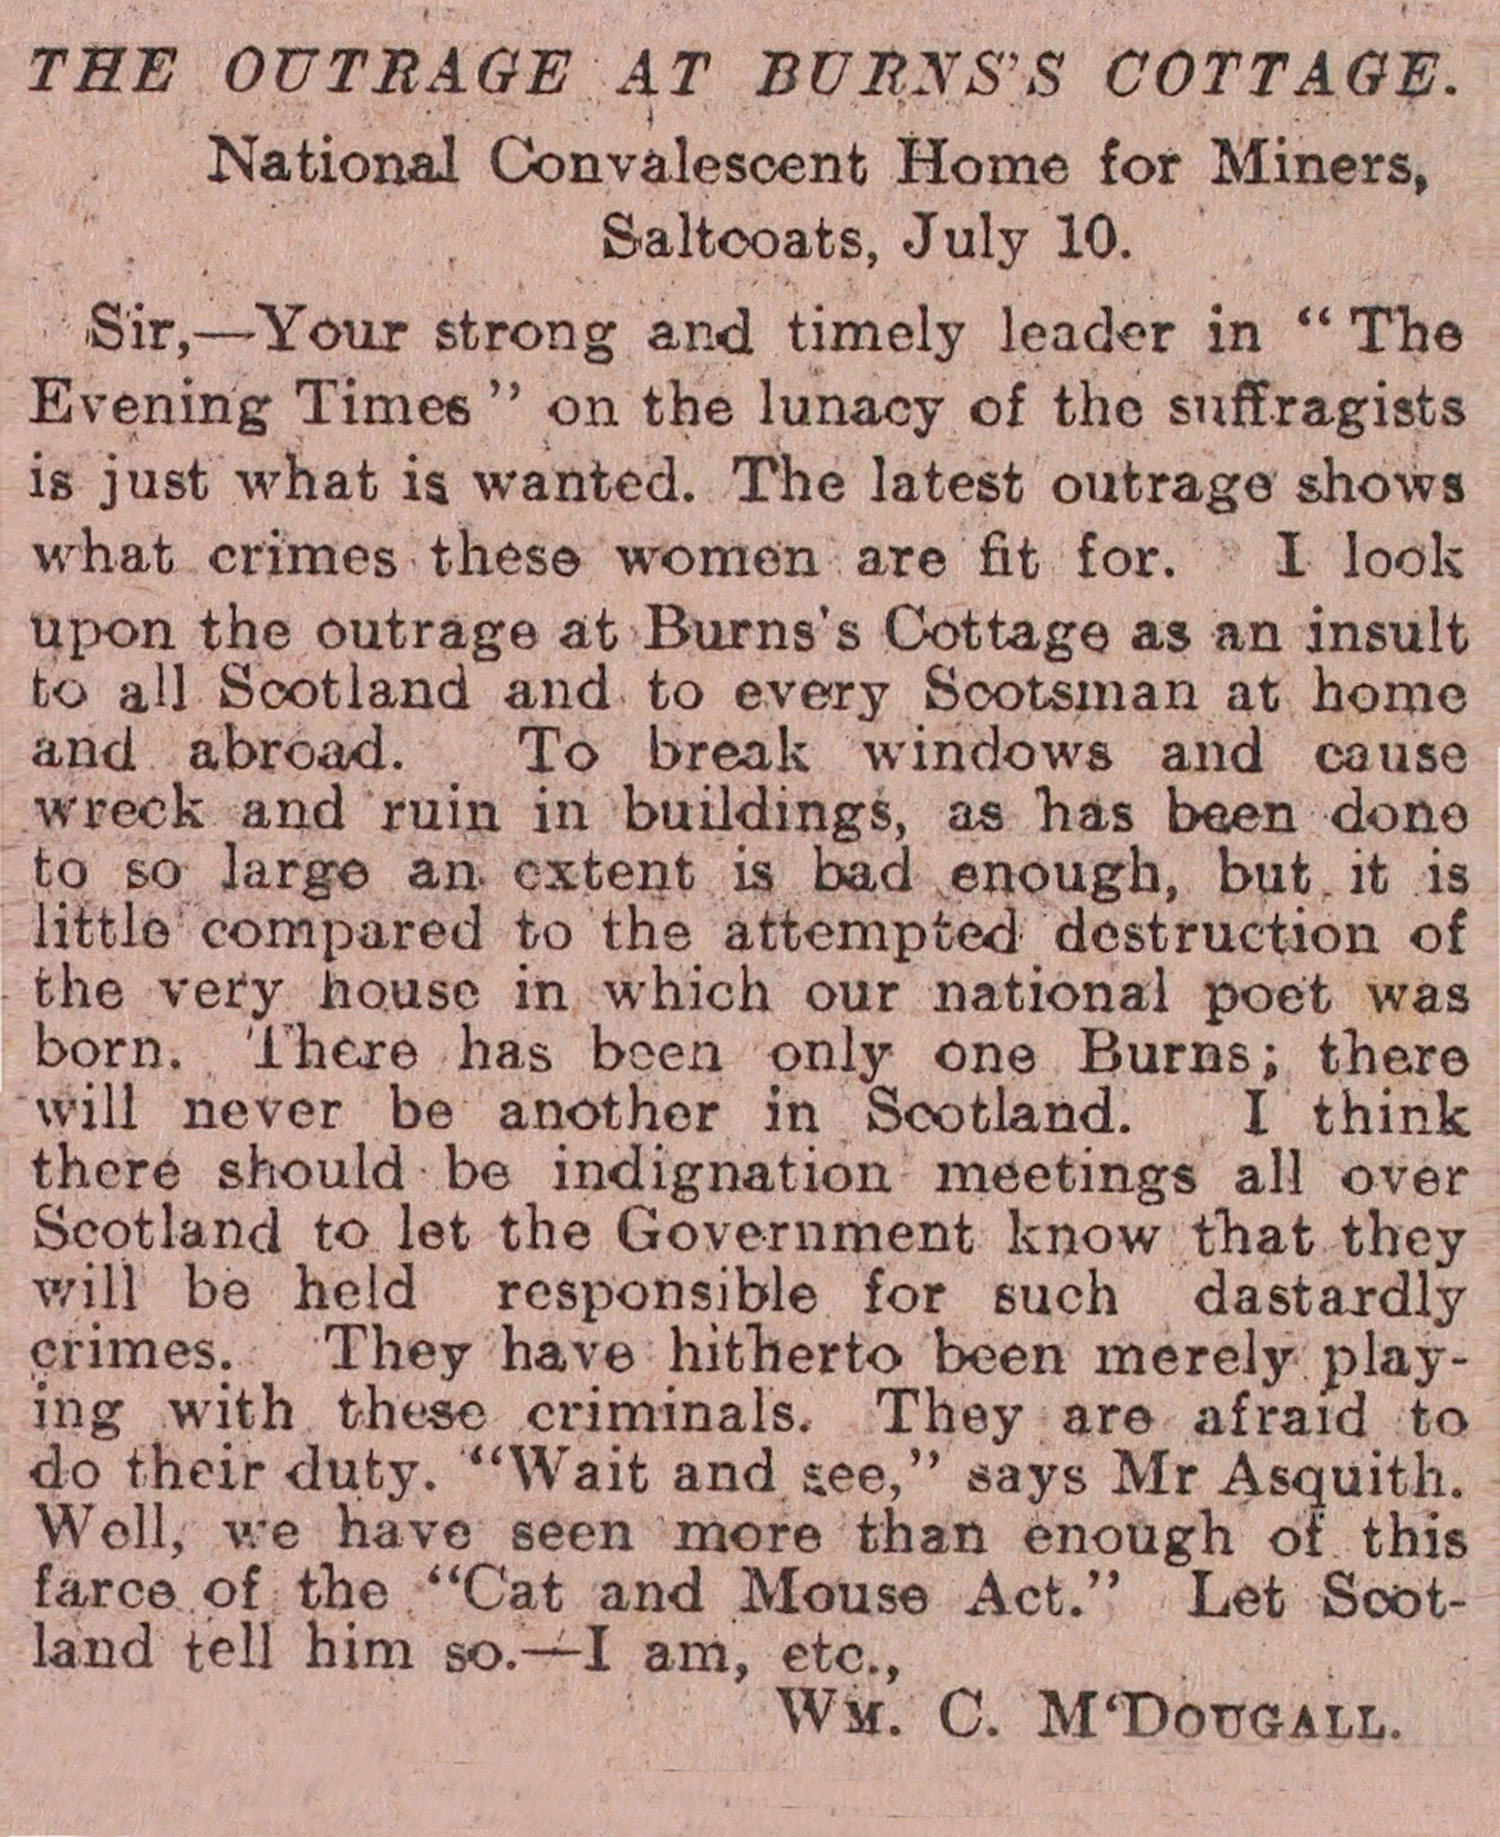 Reader's letter regarding suffrage demonstration at Burns' Cottage